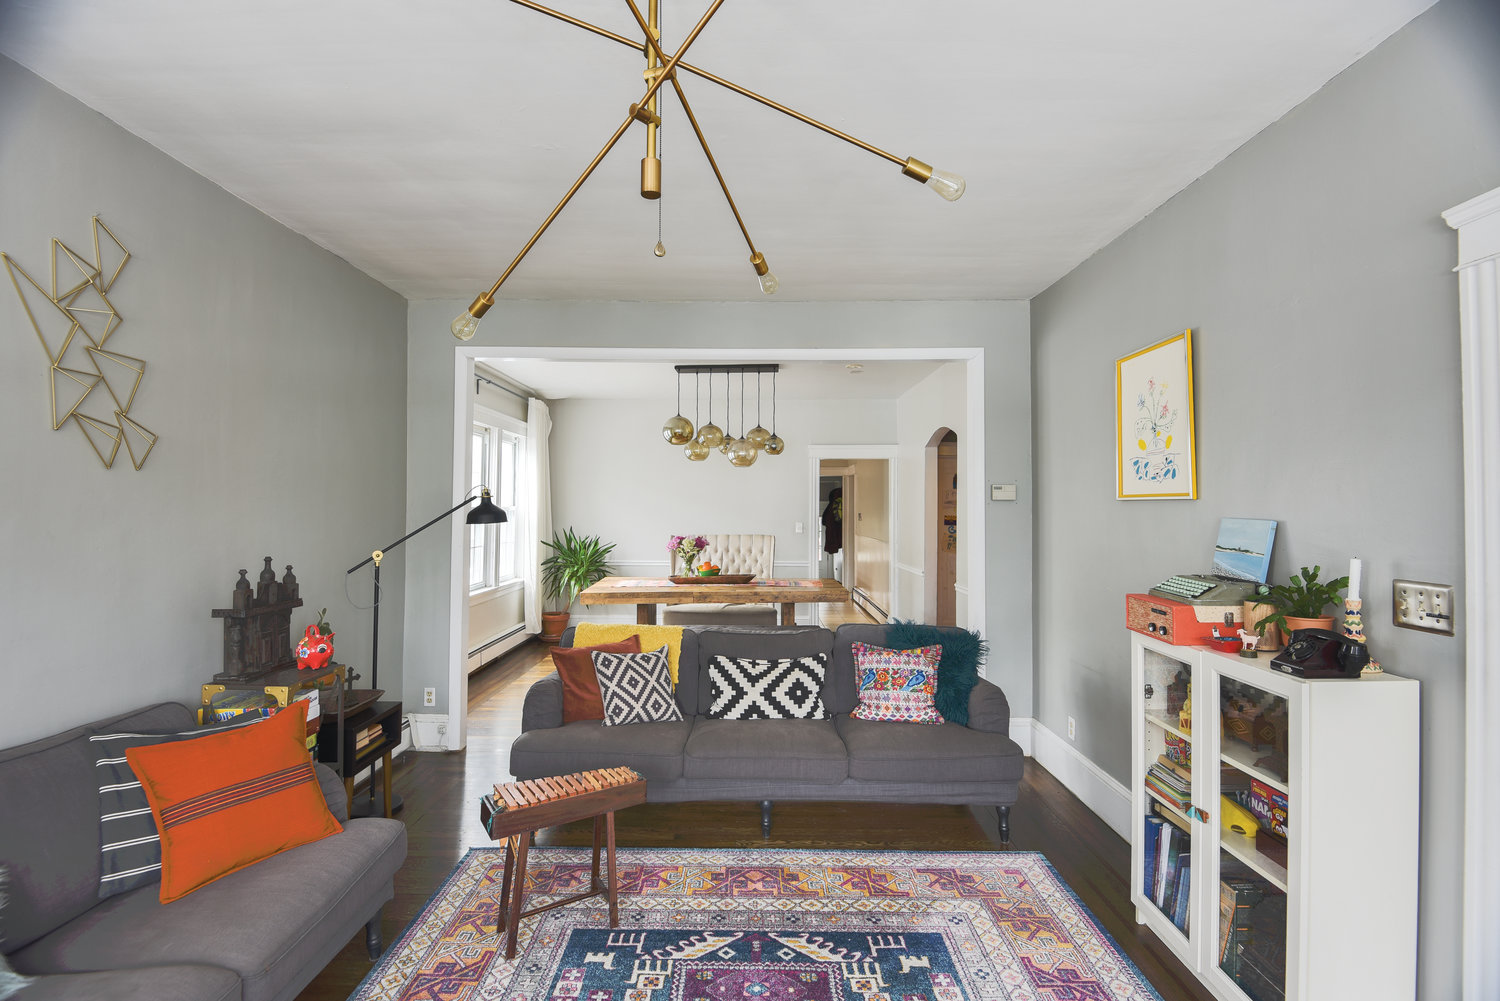 Soft gray walls and simple furnishings provide a neutral backdrop for a mix of colorful patterned textiles